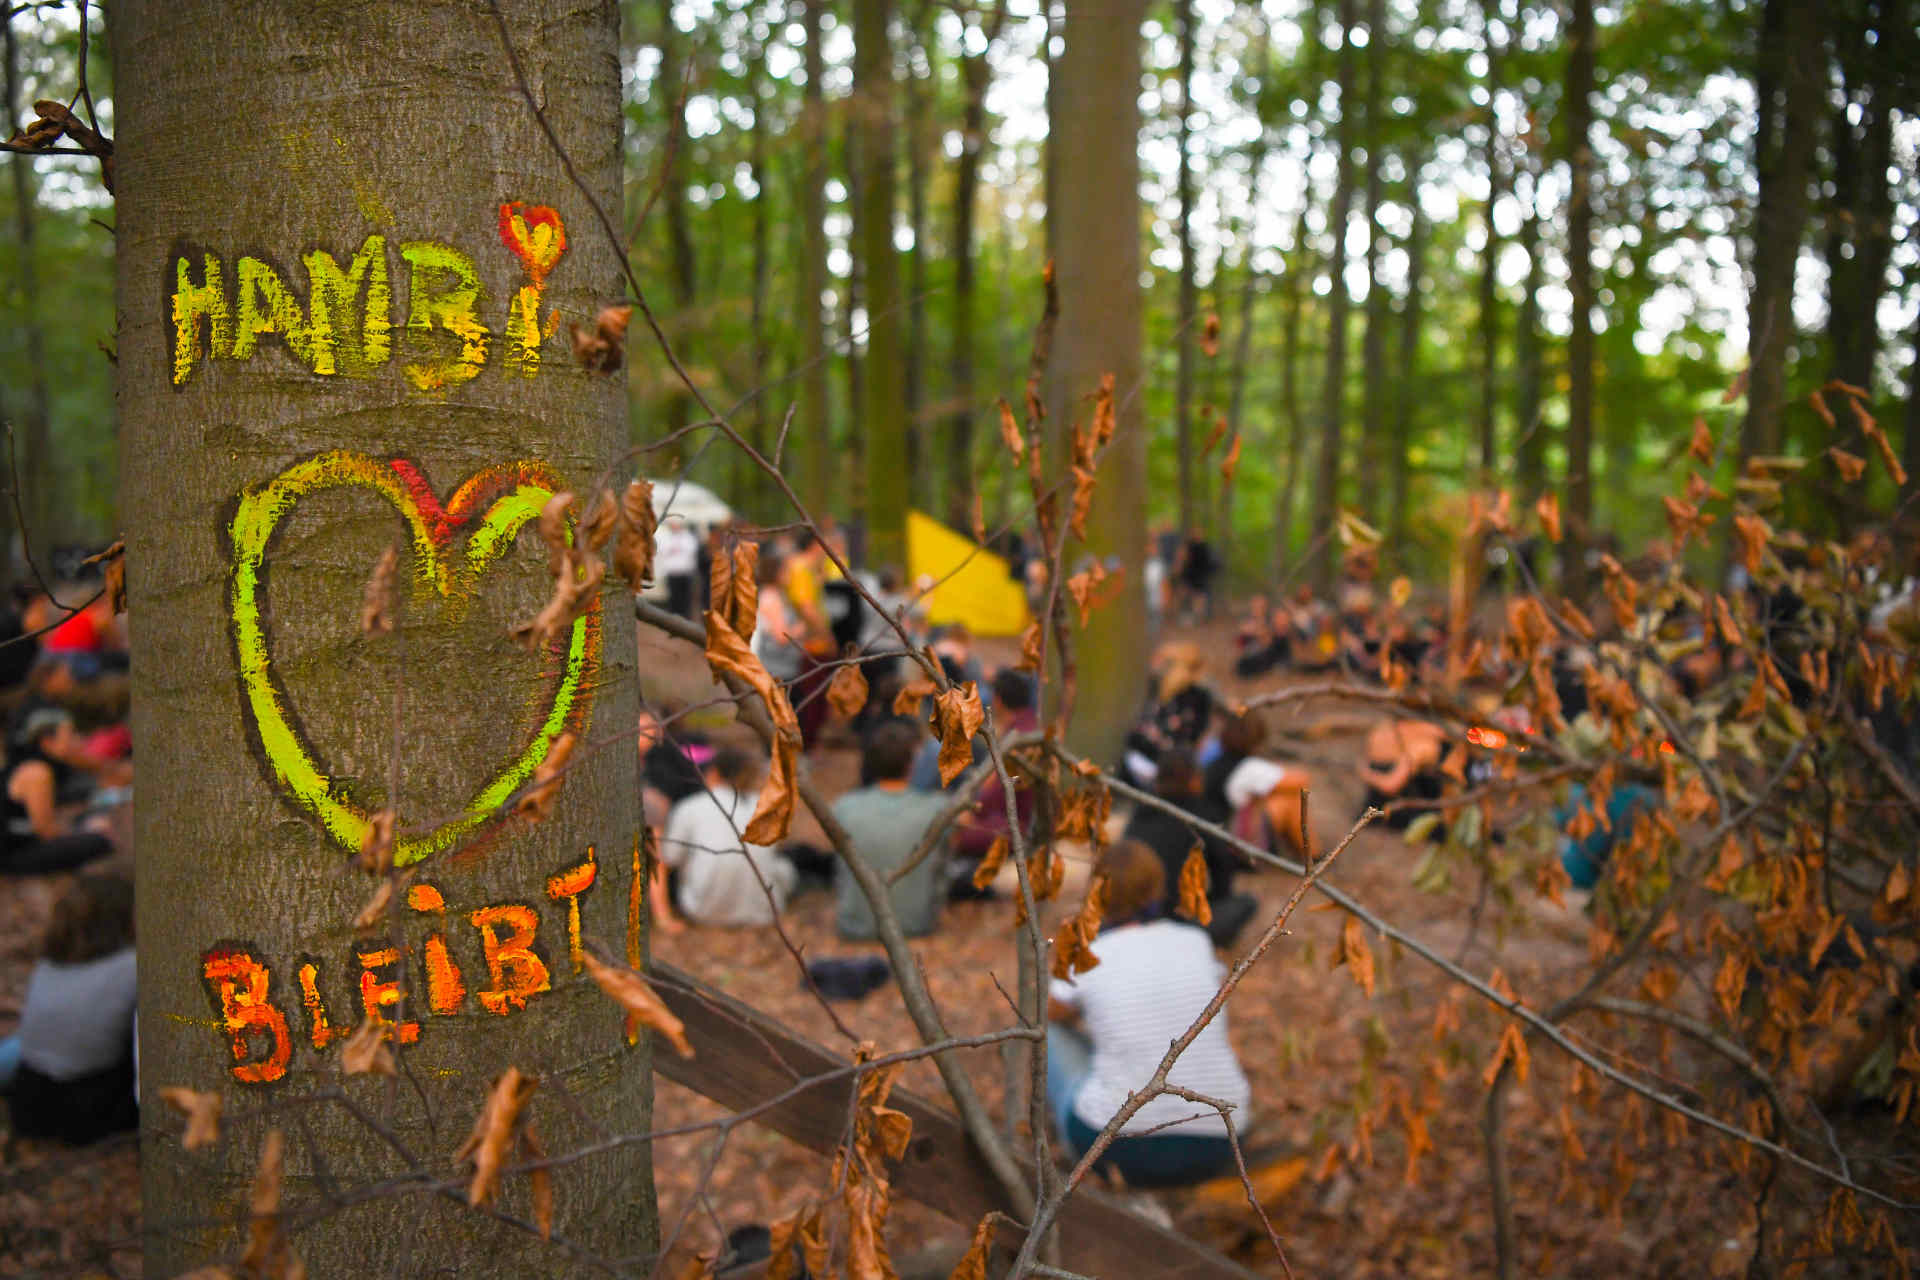 hambacher wald demonstration